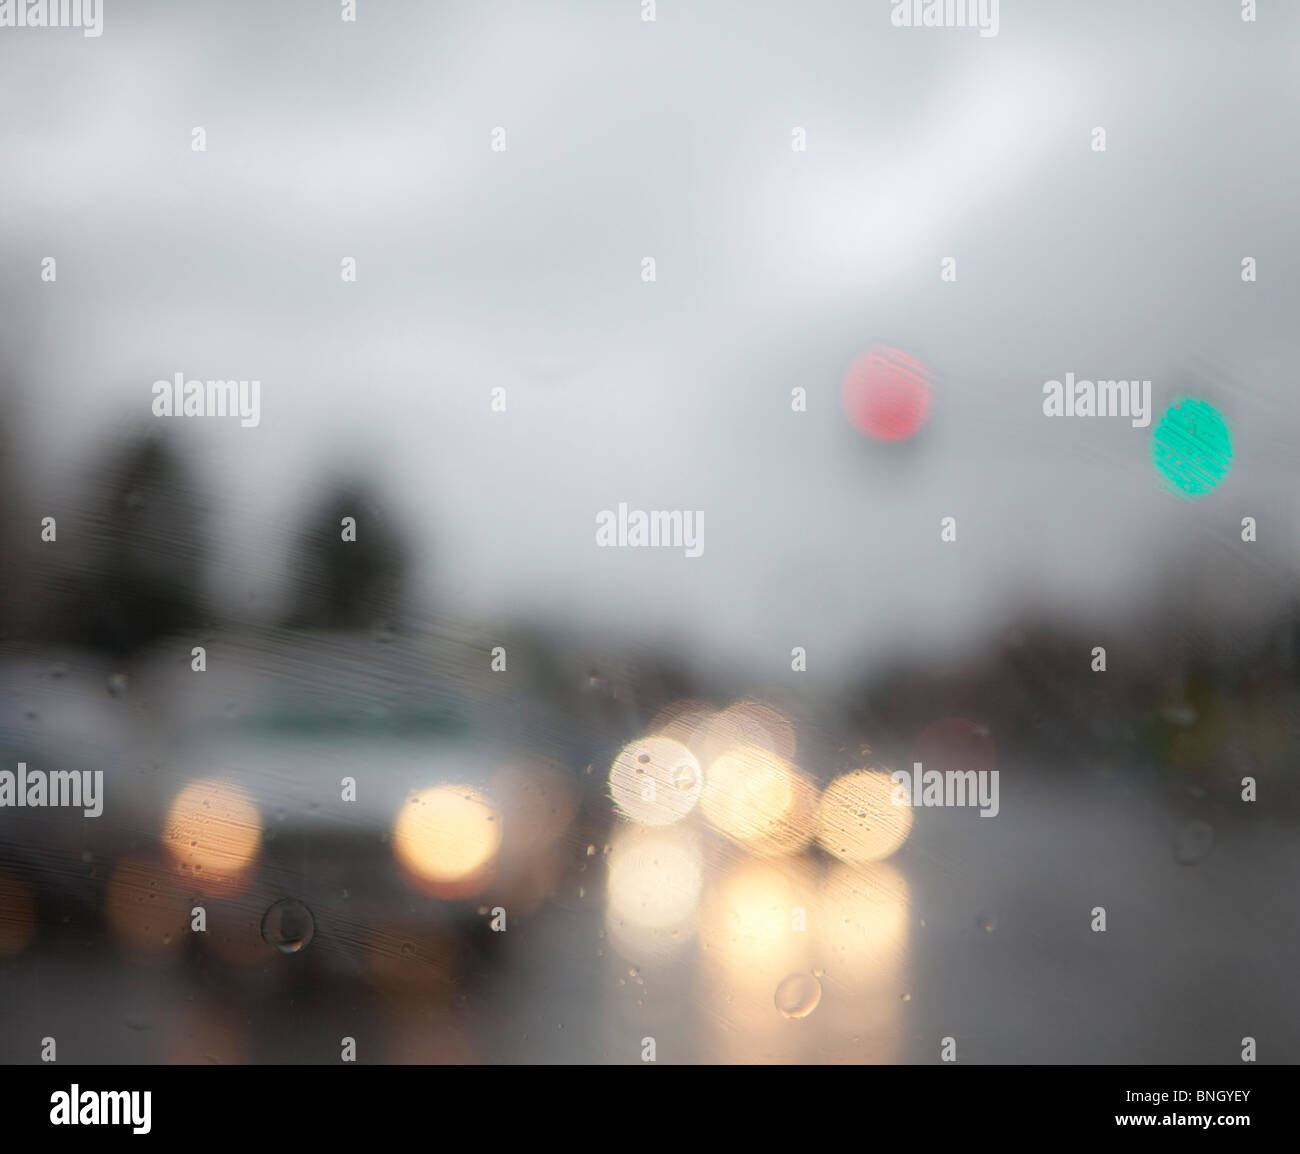 Autos auf der Straße im Regen, Seattle, Washington State, USA Stockbild